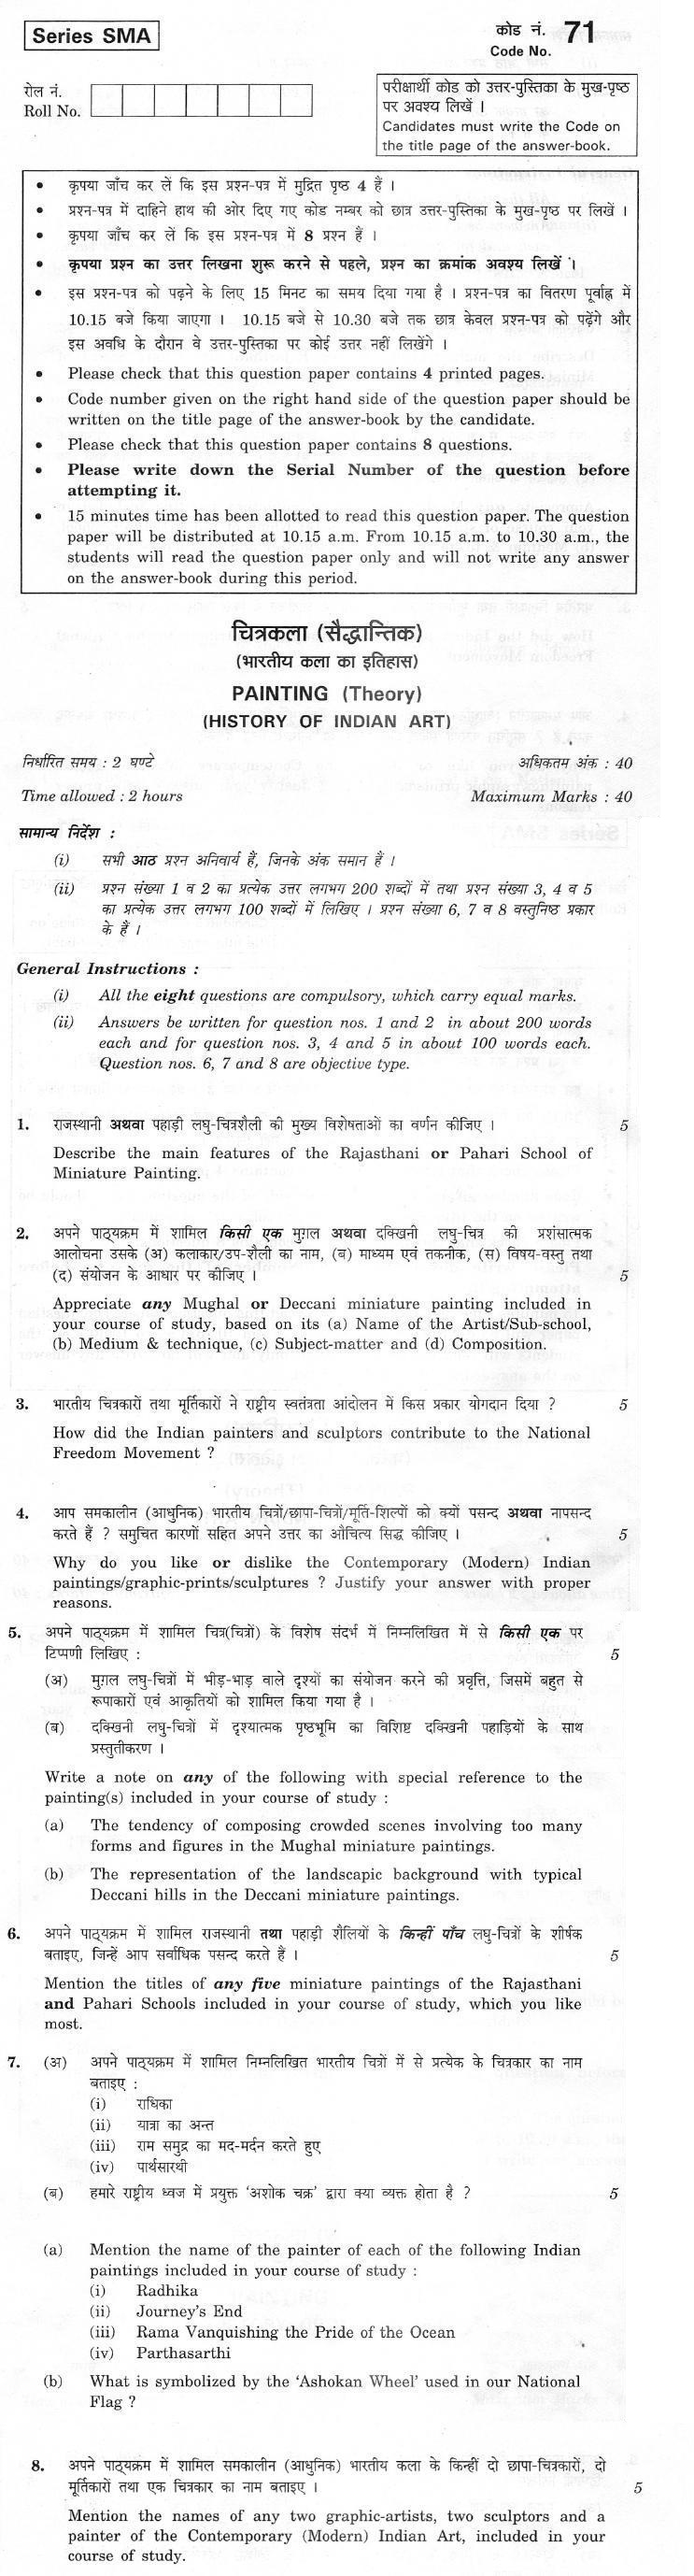 CBSE Class XII Previous Year Question Paper 2012 Painting (History of Indian Art)